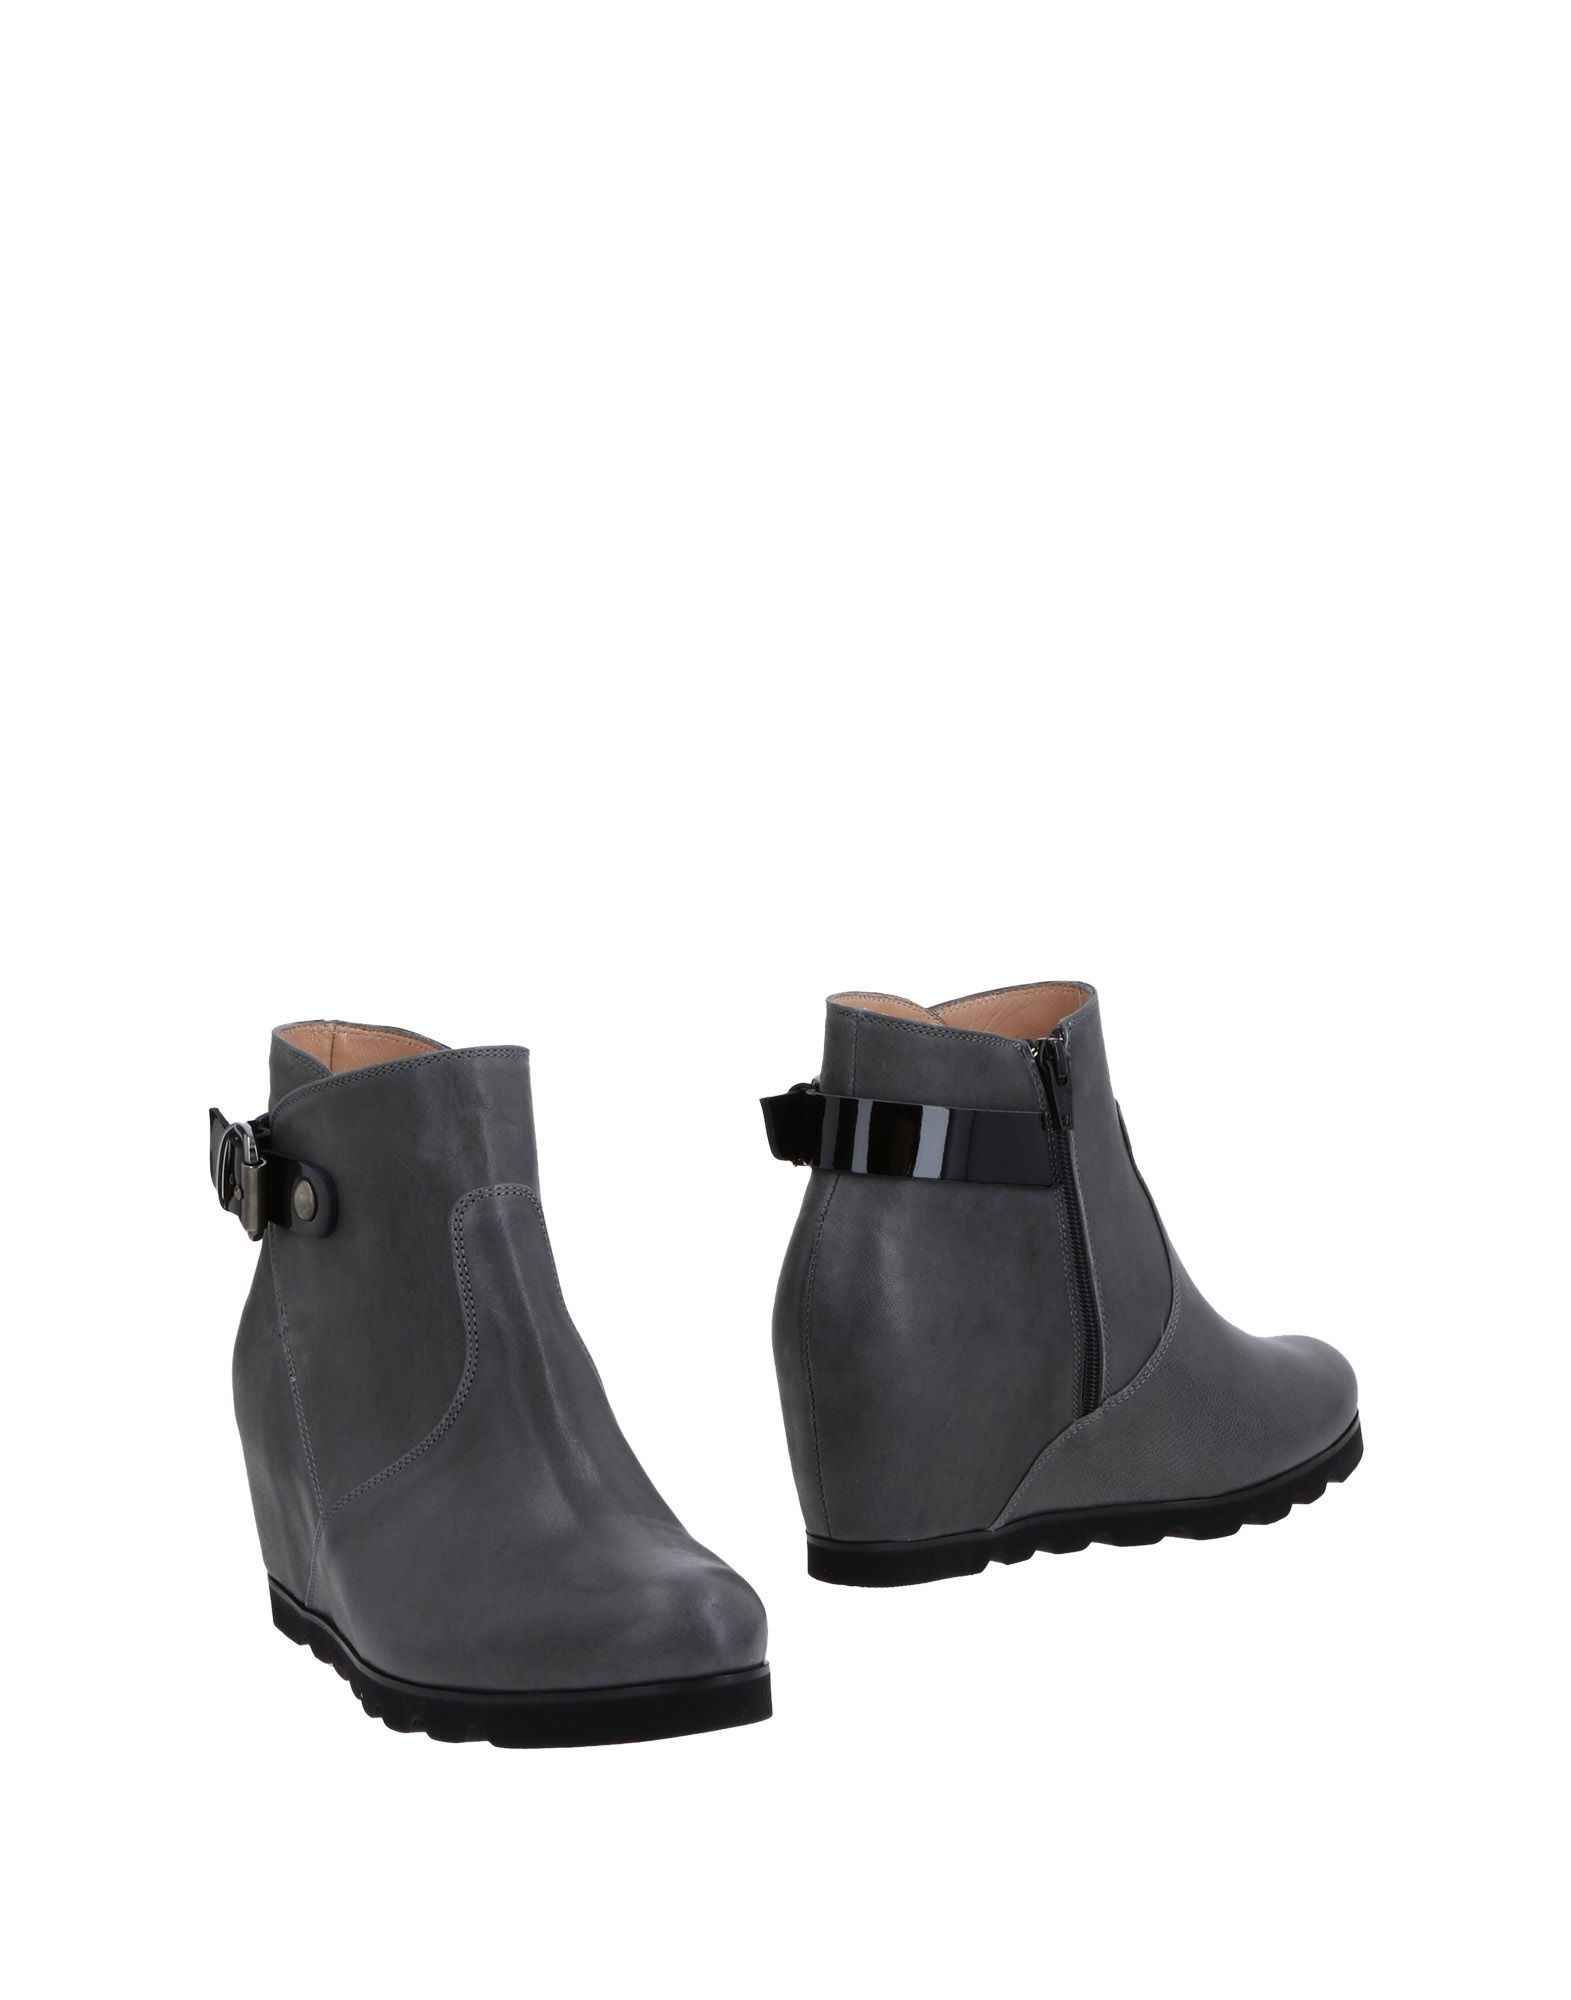 Bottine Donna Soft Femme - Bottines Donna Soft Gris Confortable et belle